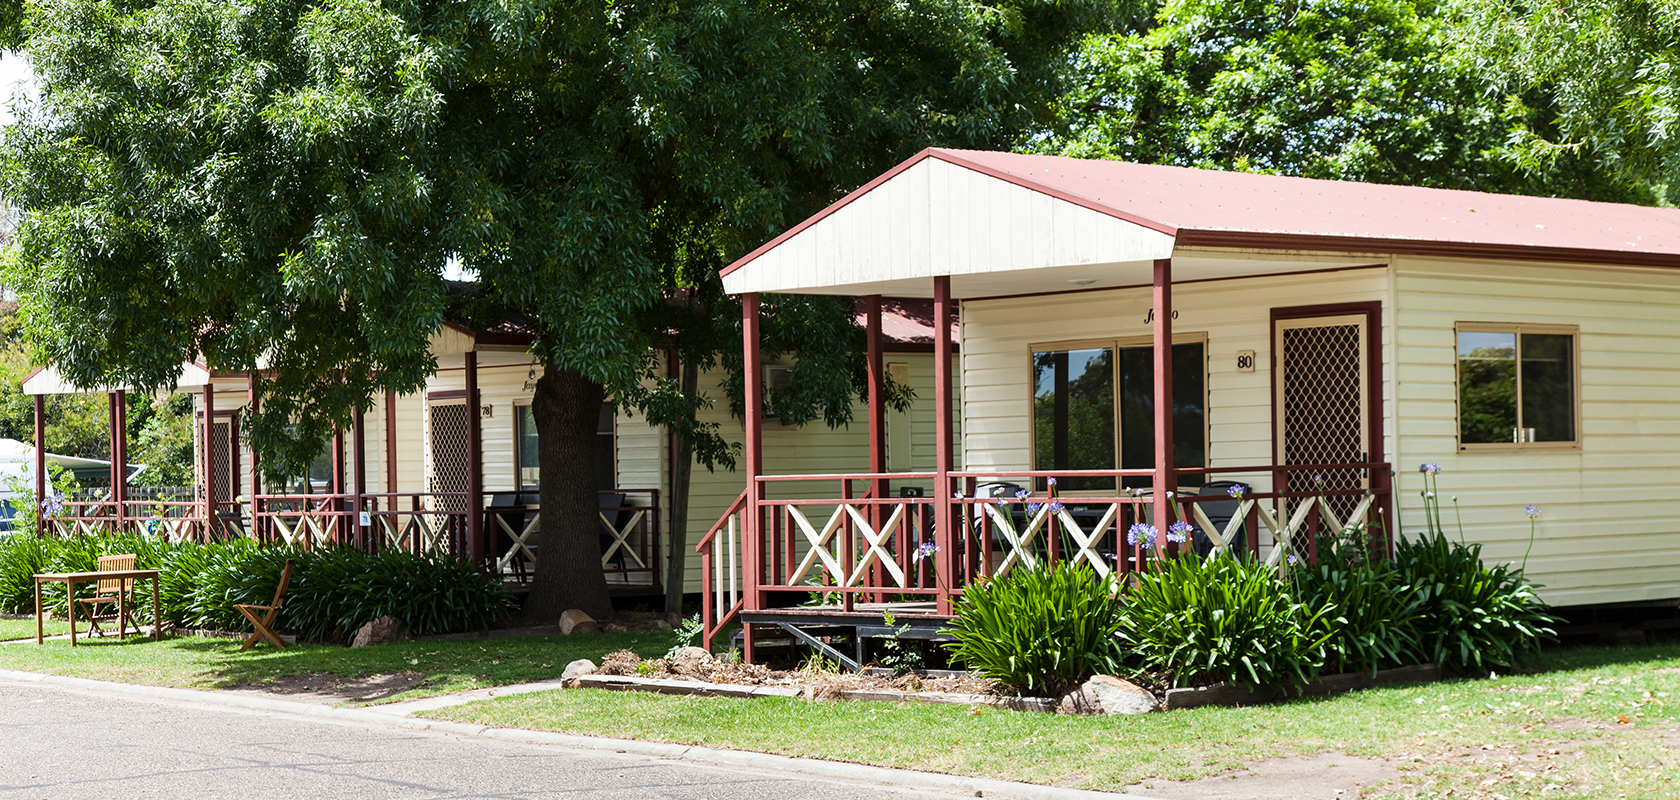 NRMA Bairnsdale Riverside Holiday Park - Bairnsdale photo 1